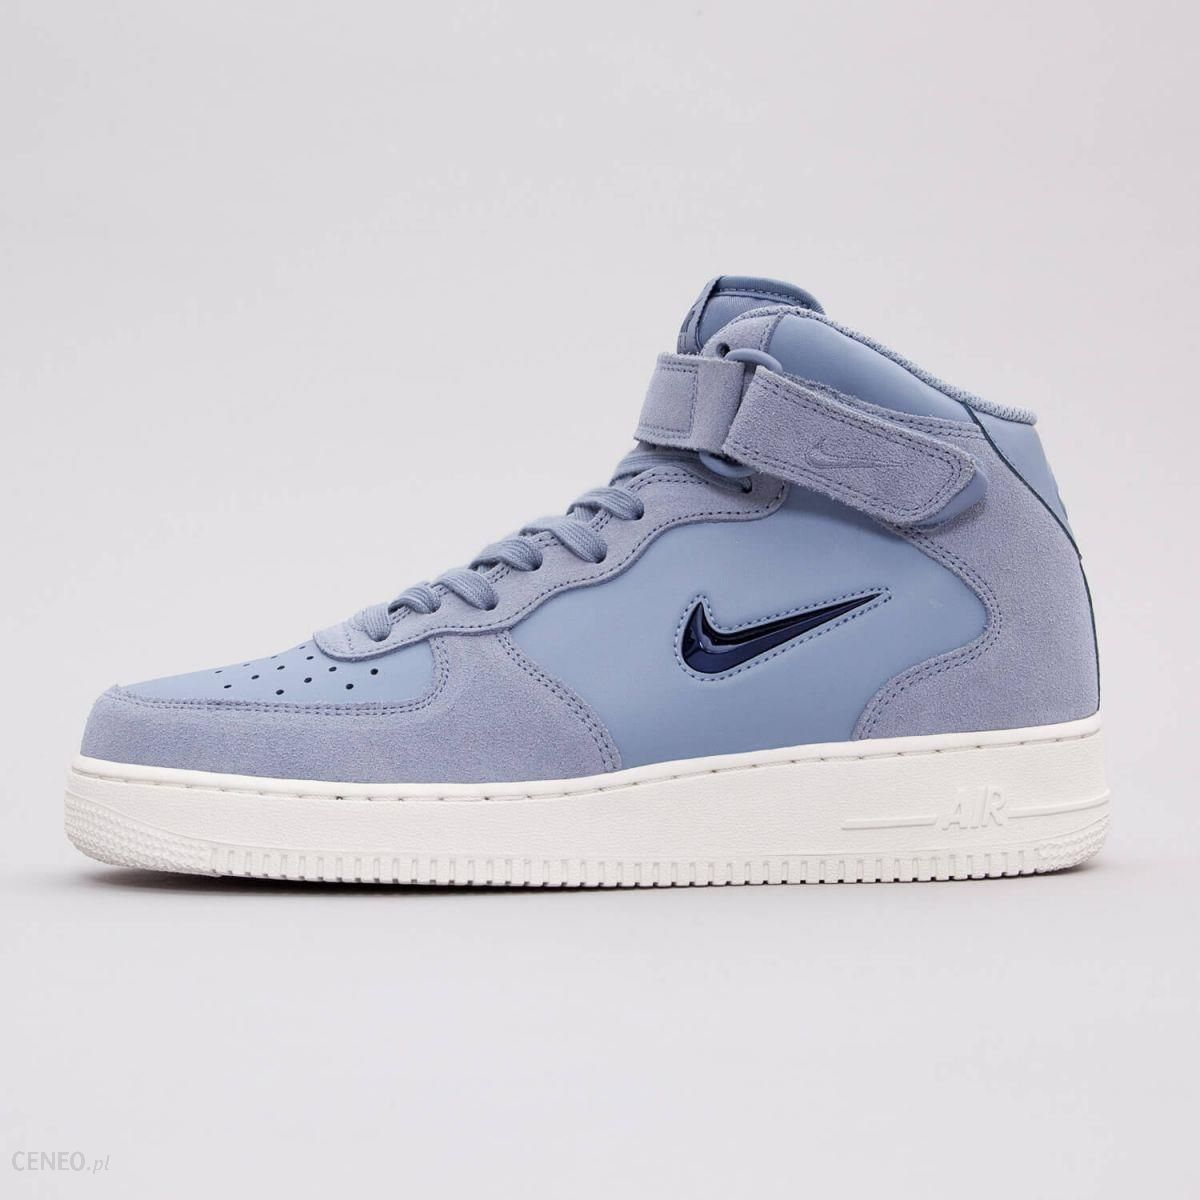 Nike AIR FORCE 1 MID '07 LV8 JEWEL 804609 402 Ceny i opinie Ceneo.pl